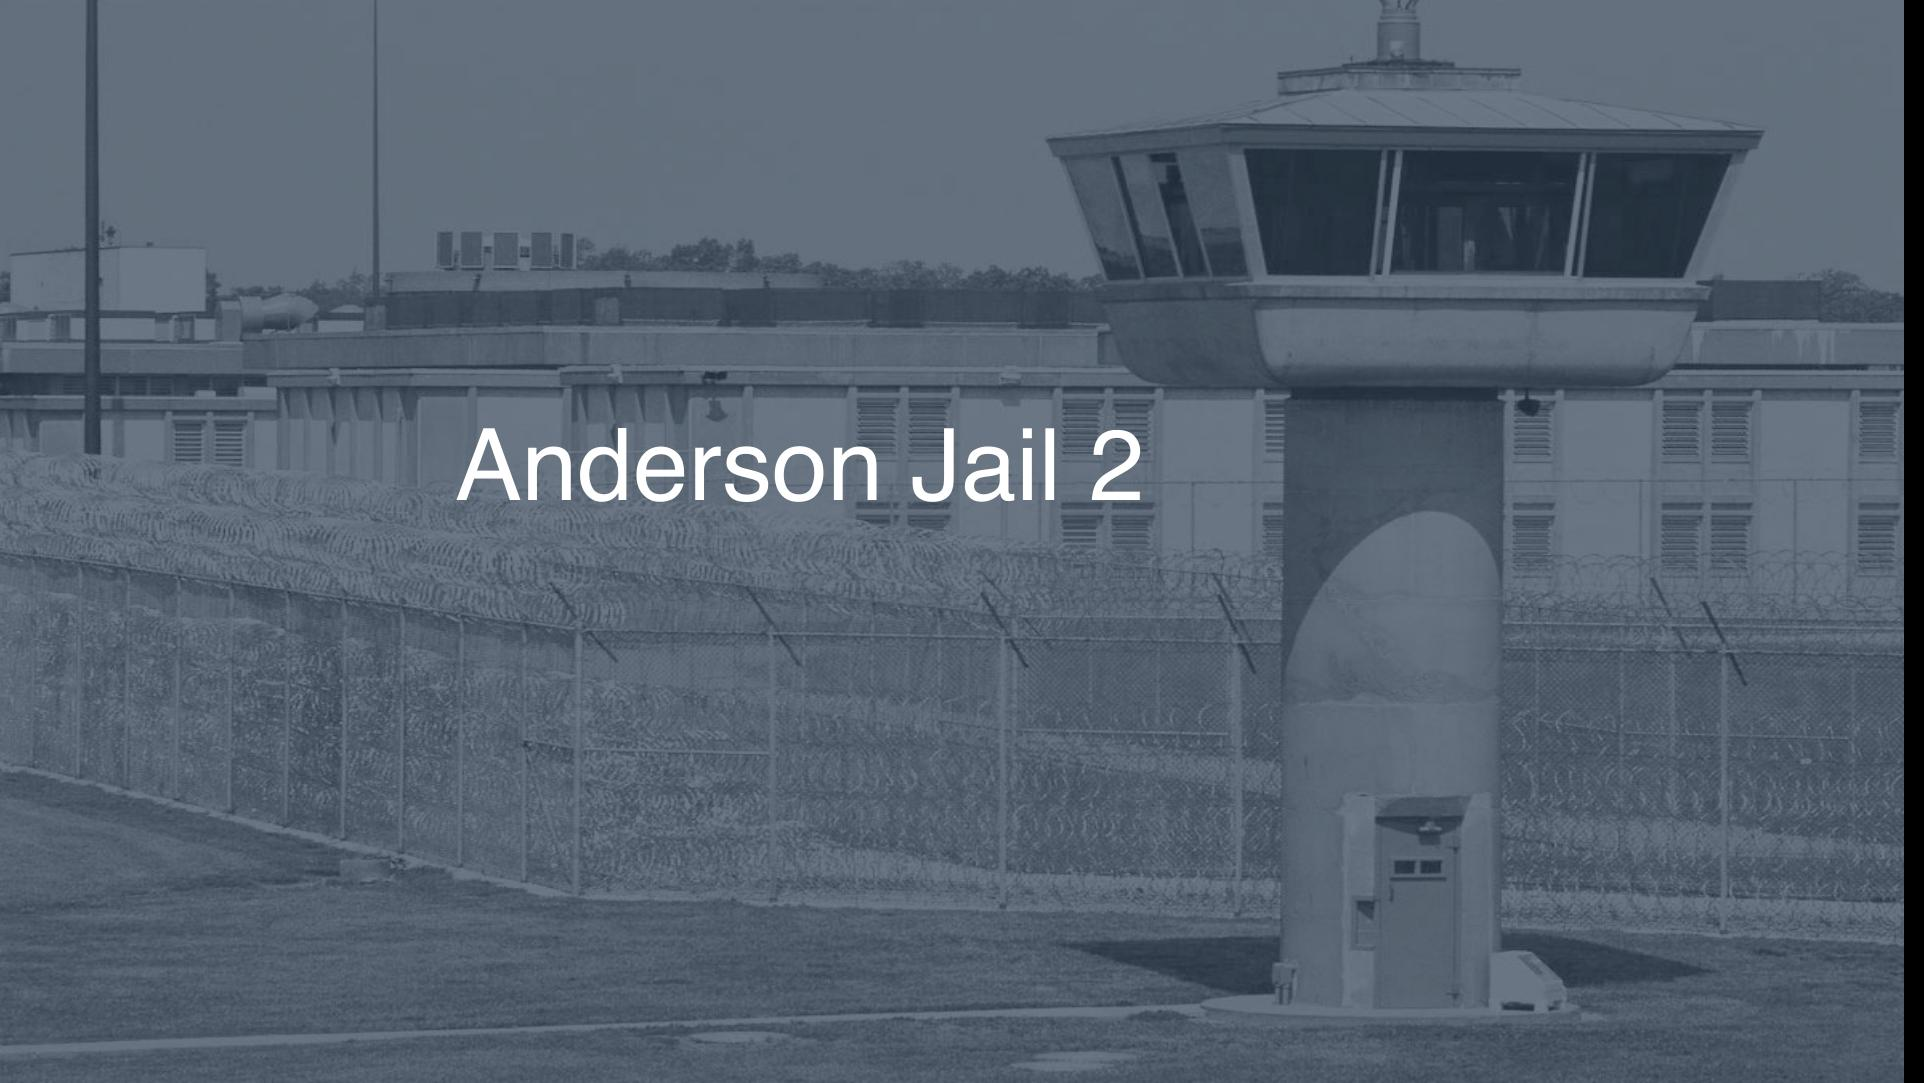 Anderson Jail correctional facility picture